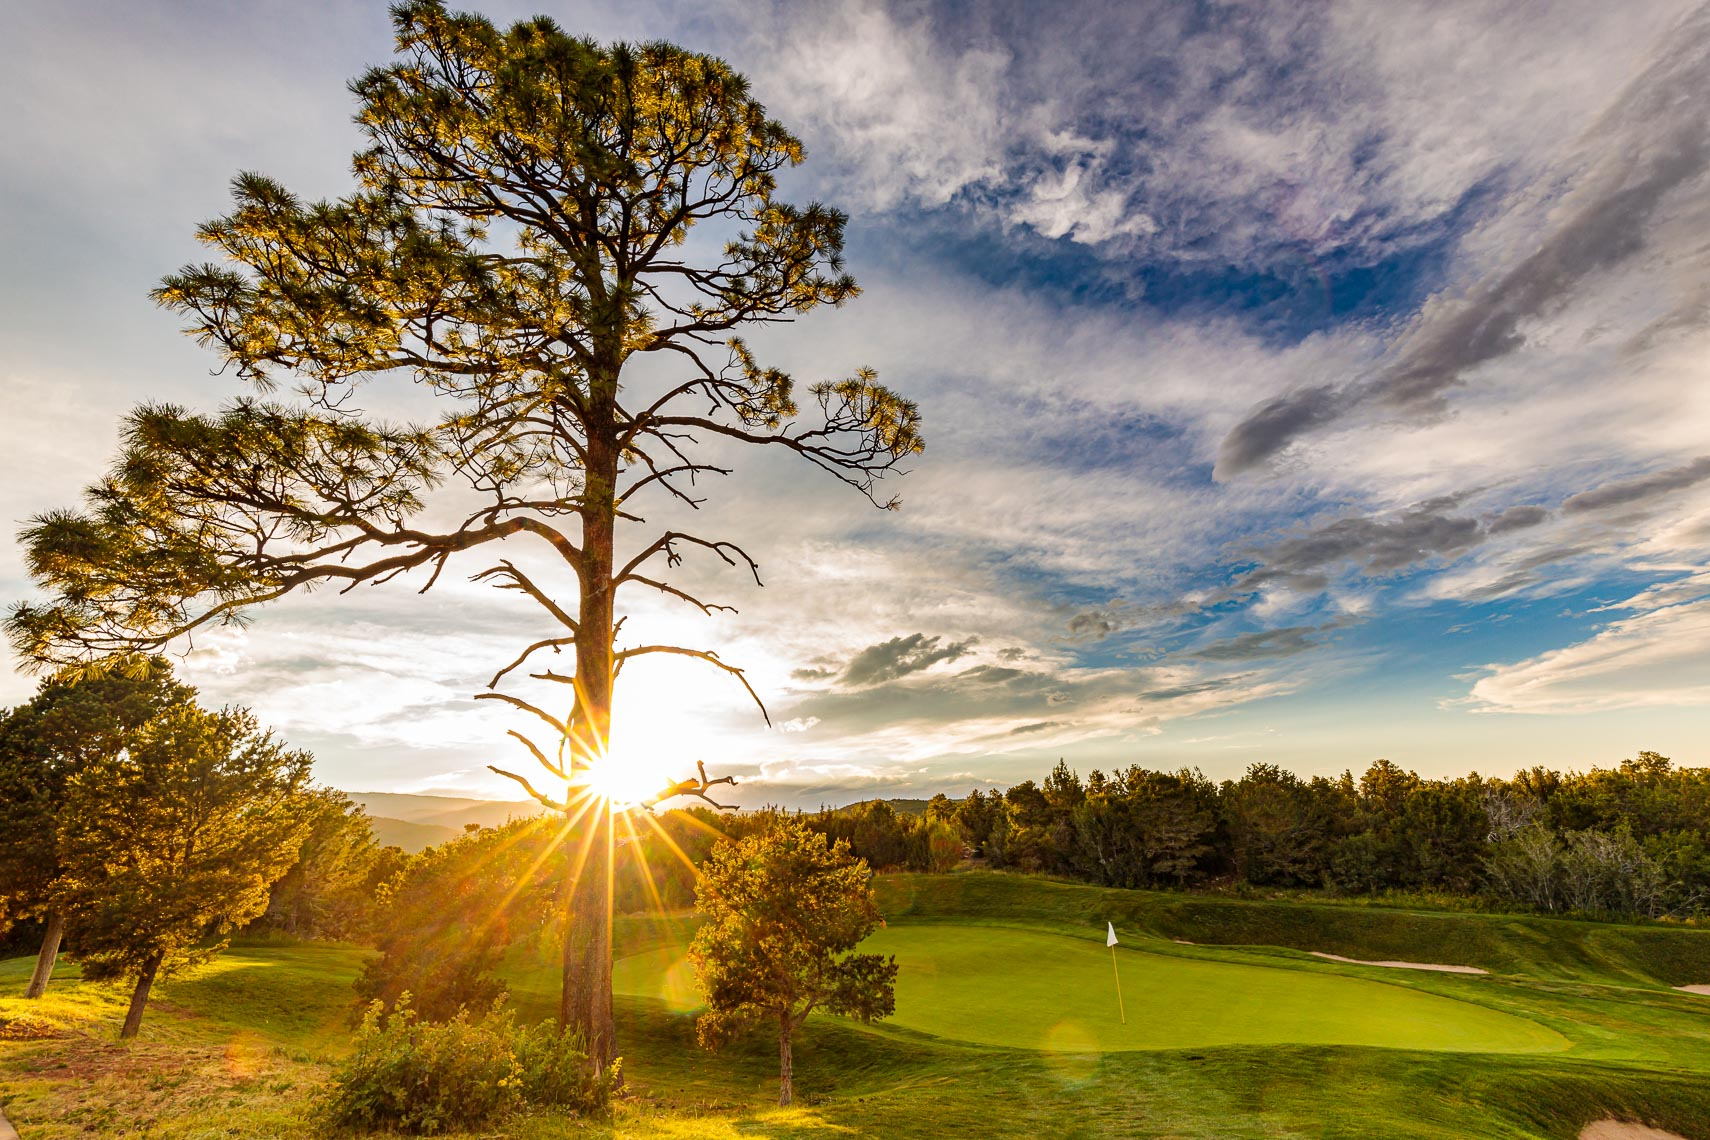 New Mexico Scenic Paako Ridge Golf Club | Michael DeYoung